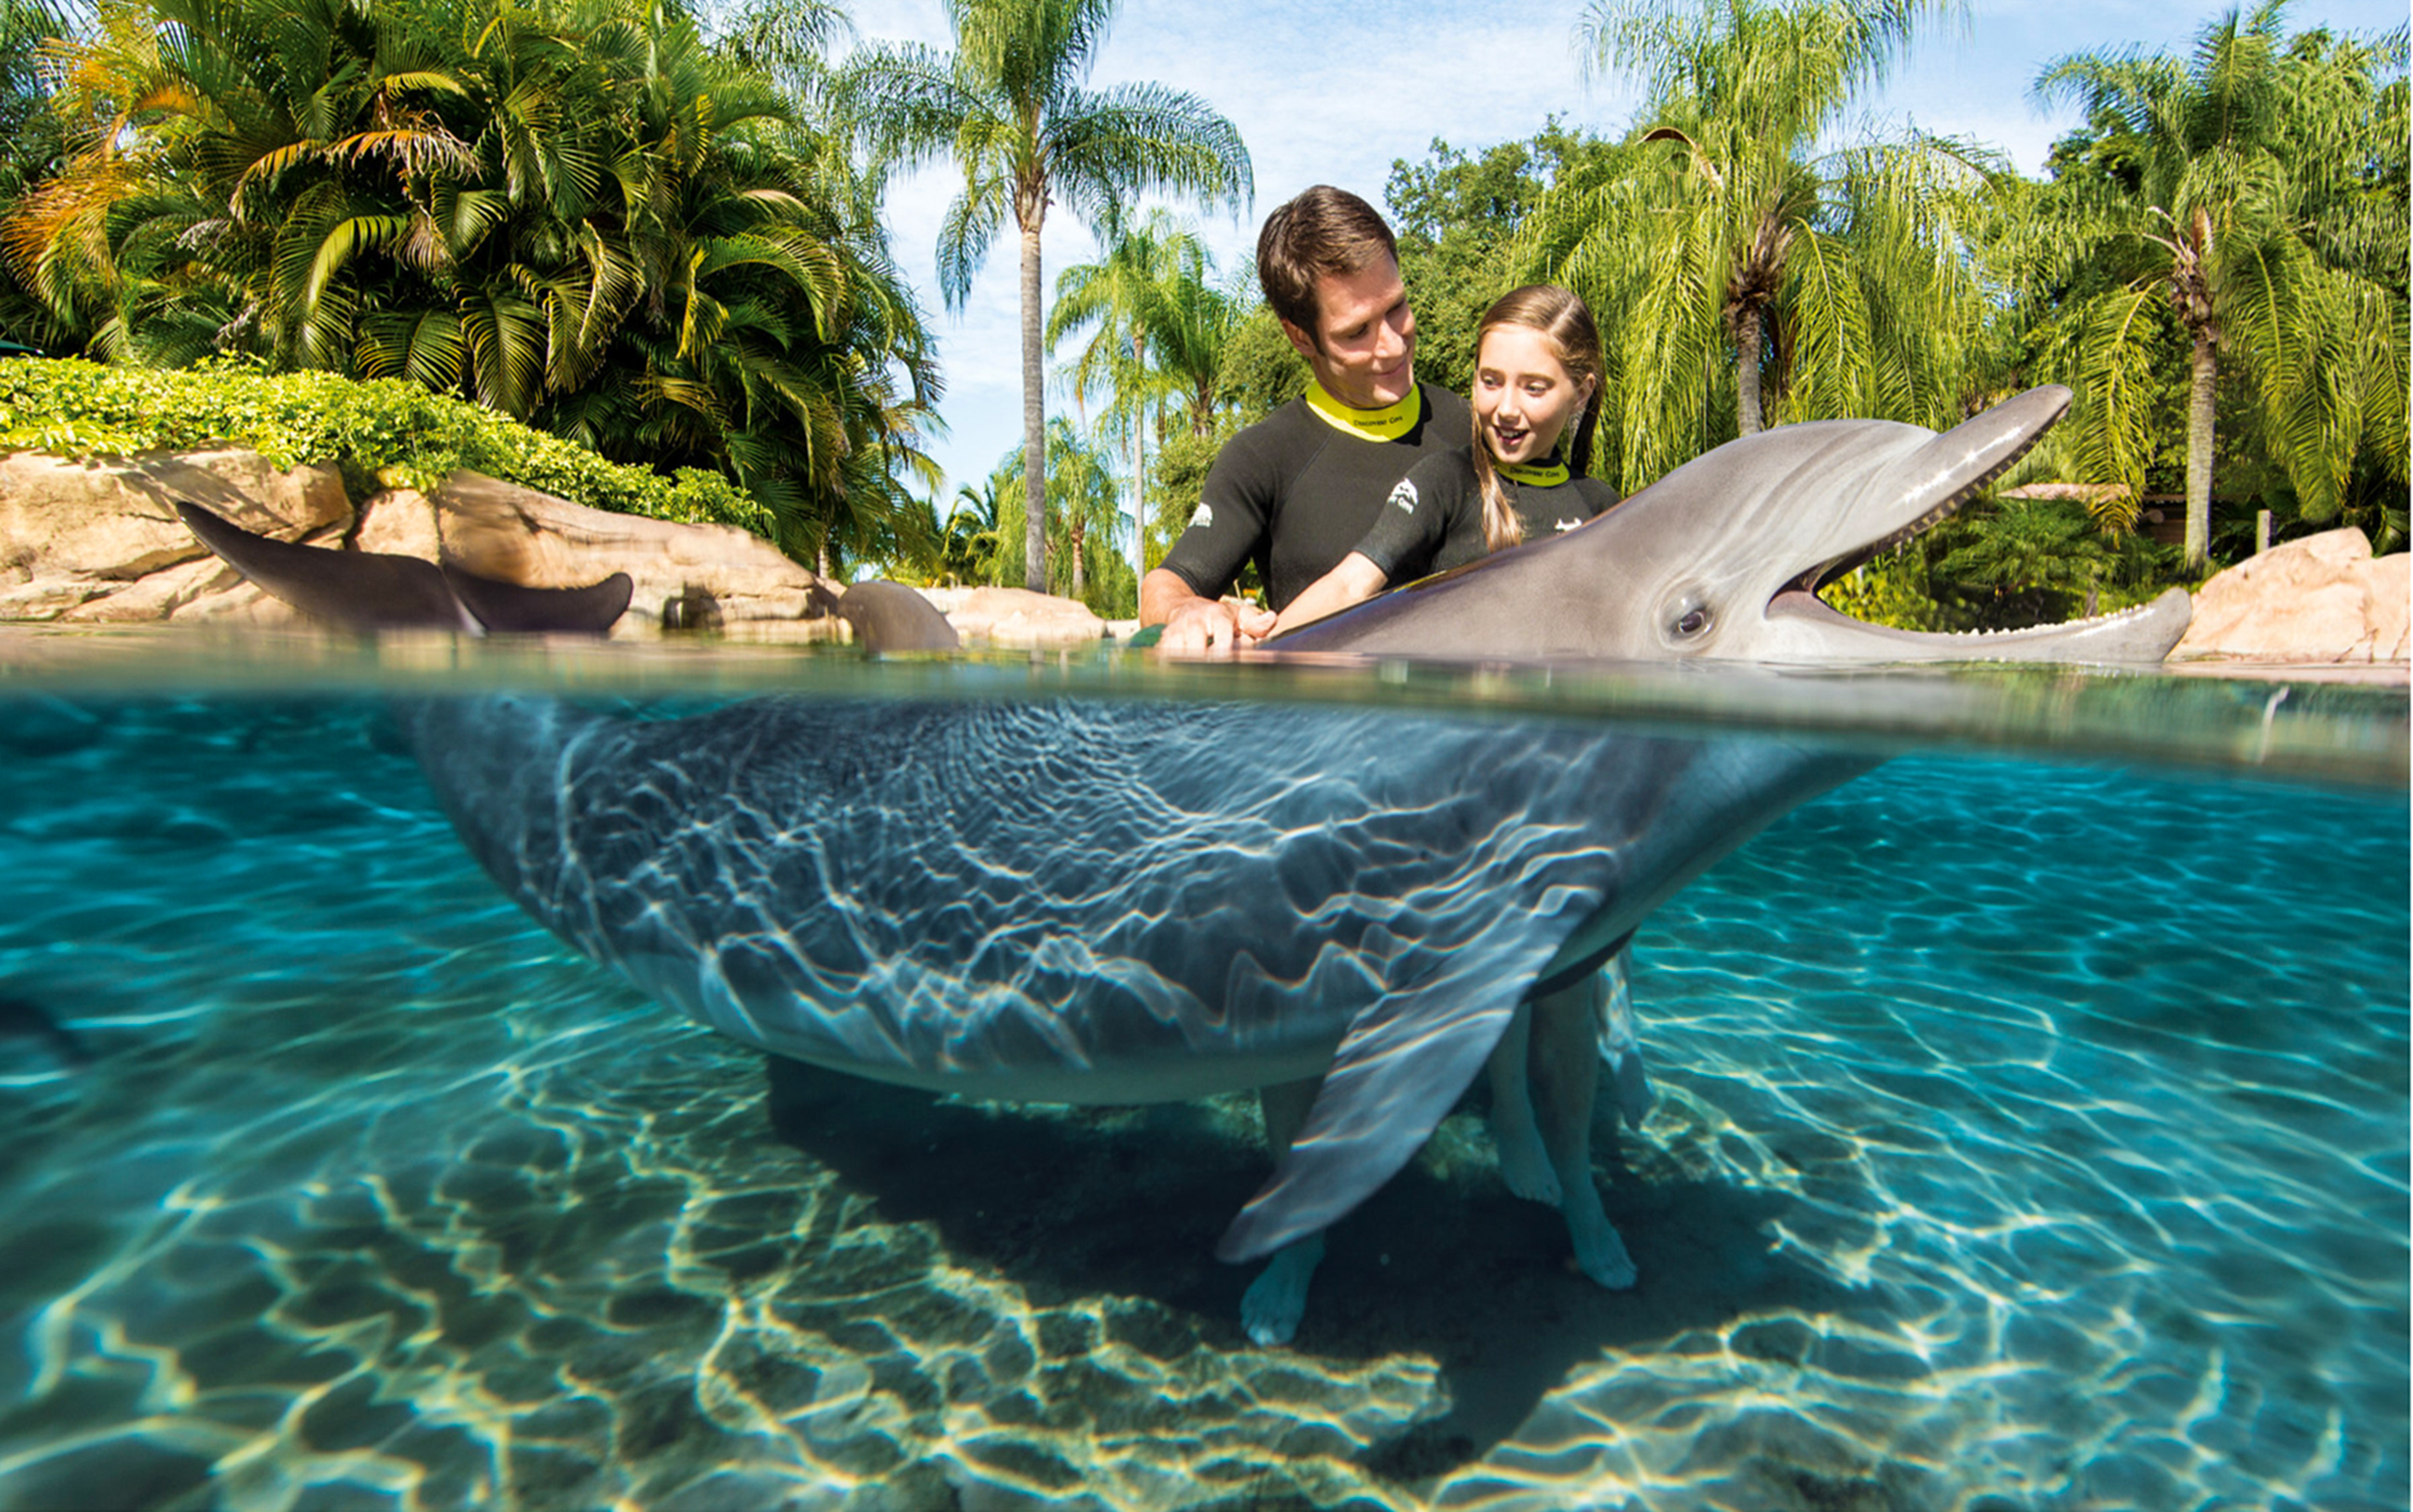 DCO_15_Dolphin2DadDaughter_4H8A3990